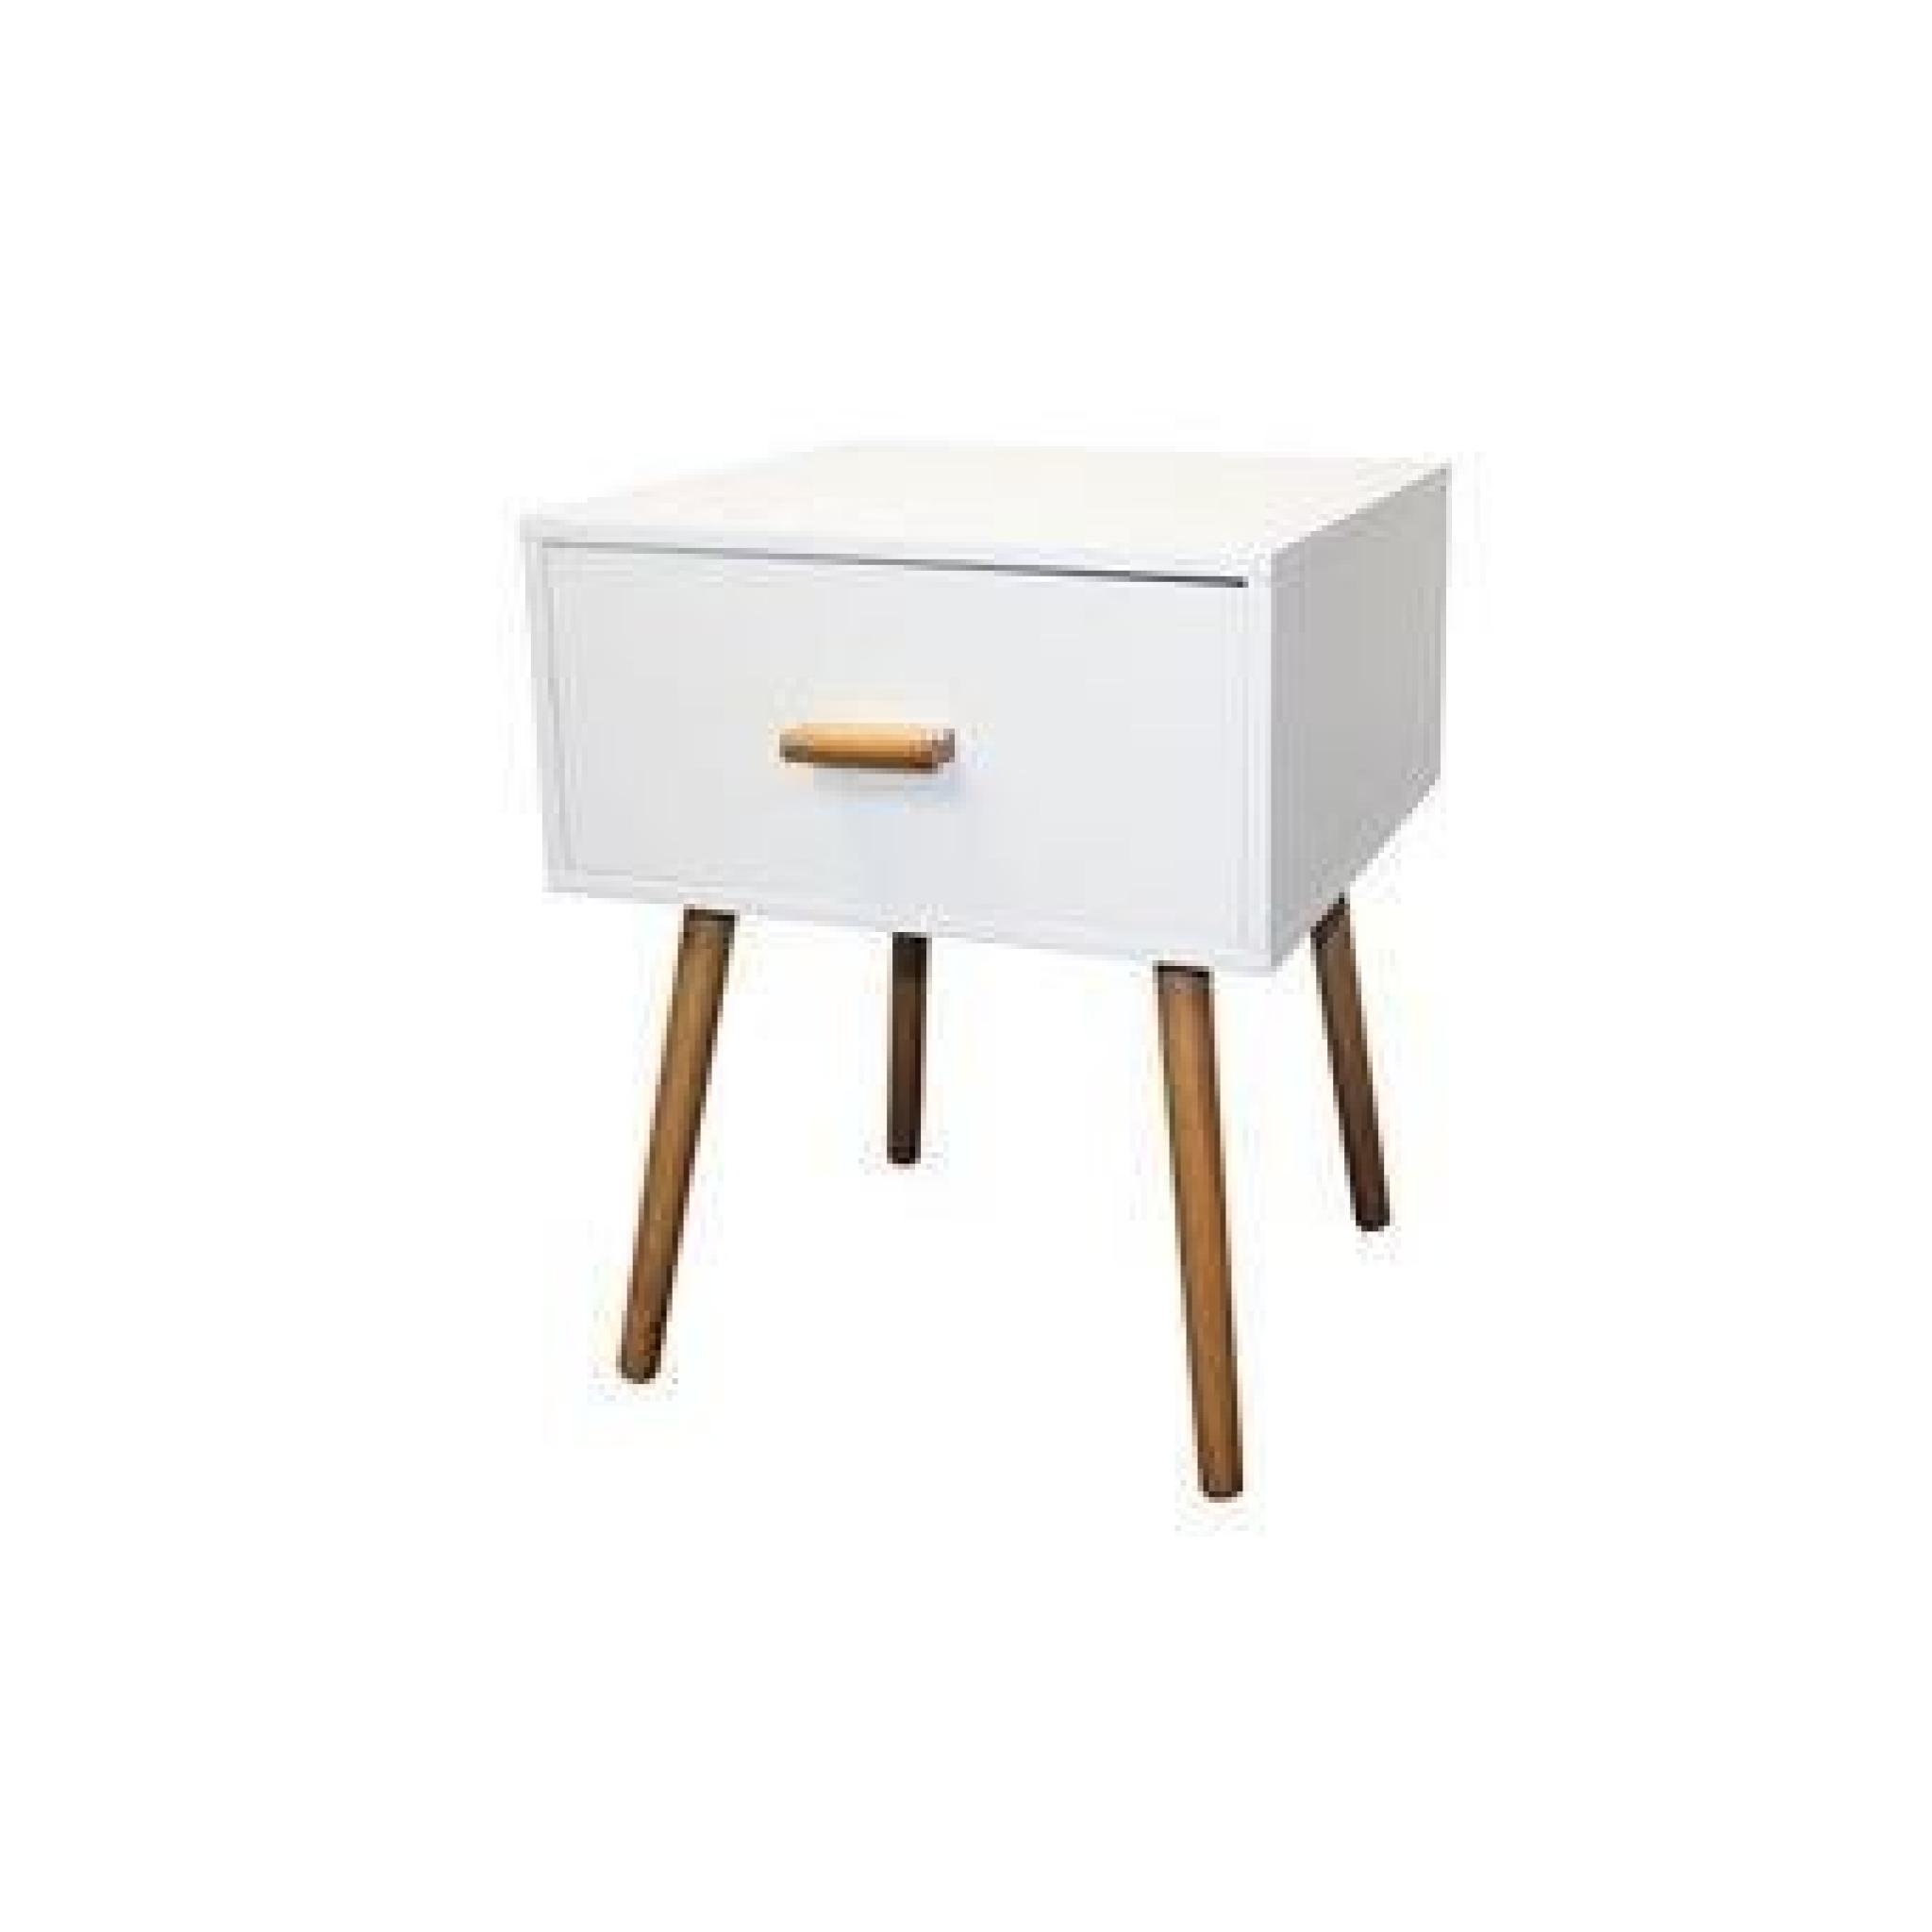 Table de chevet blanc design scandinave achat vente table basse pas cher - Table de chevet cuir blanc ...